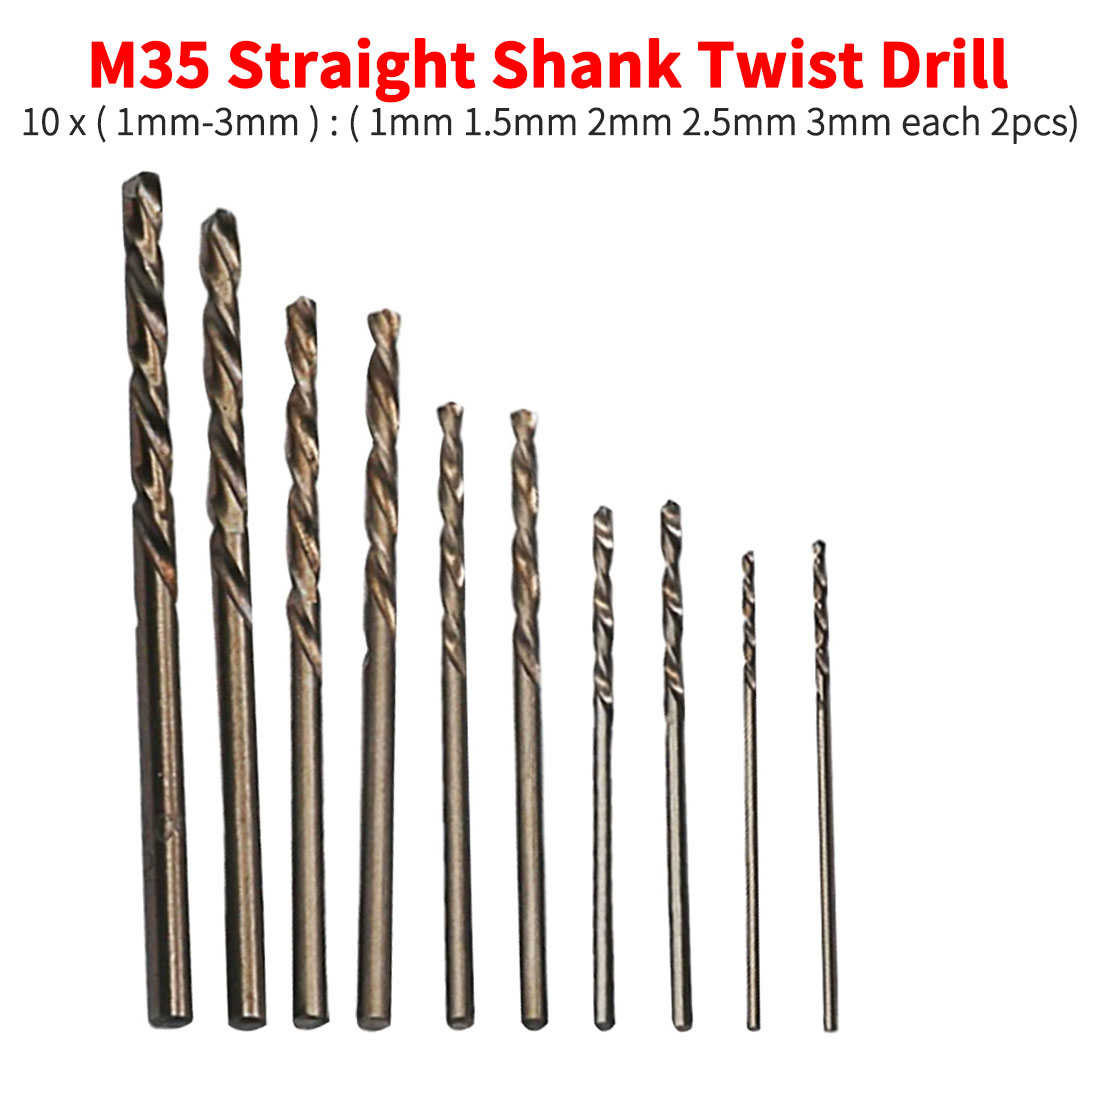 10pcs Twist Drill Bit Set HSS High Speed Steel Drill Bit Woodworking Wood Tool 1mm 1.5mm 2mm 2.5mm 3mm For Metal Aluminum